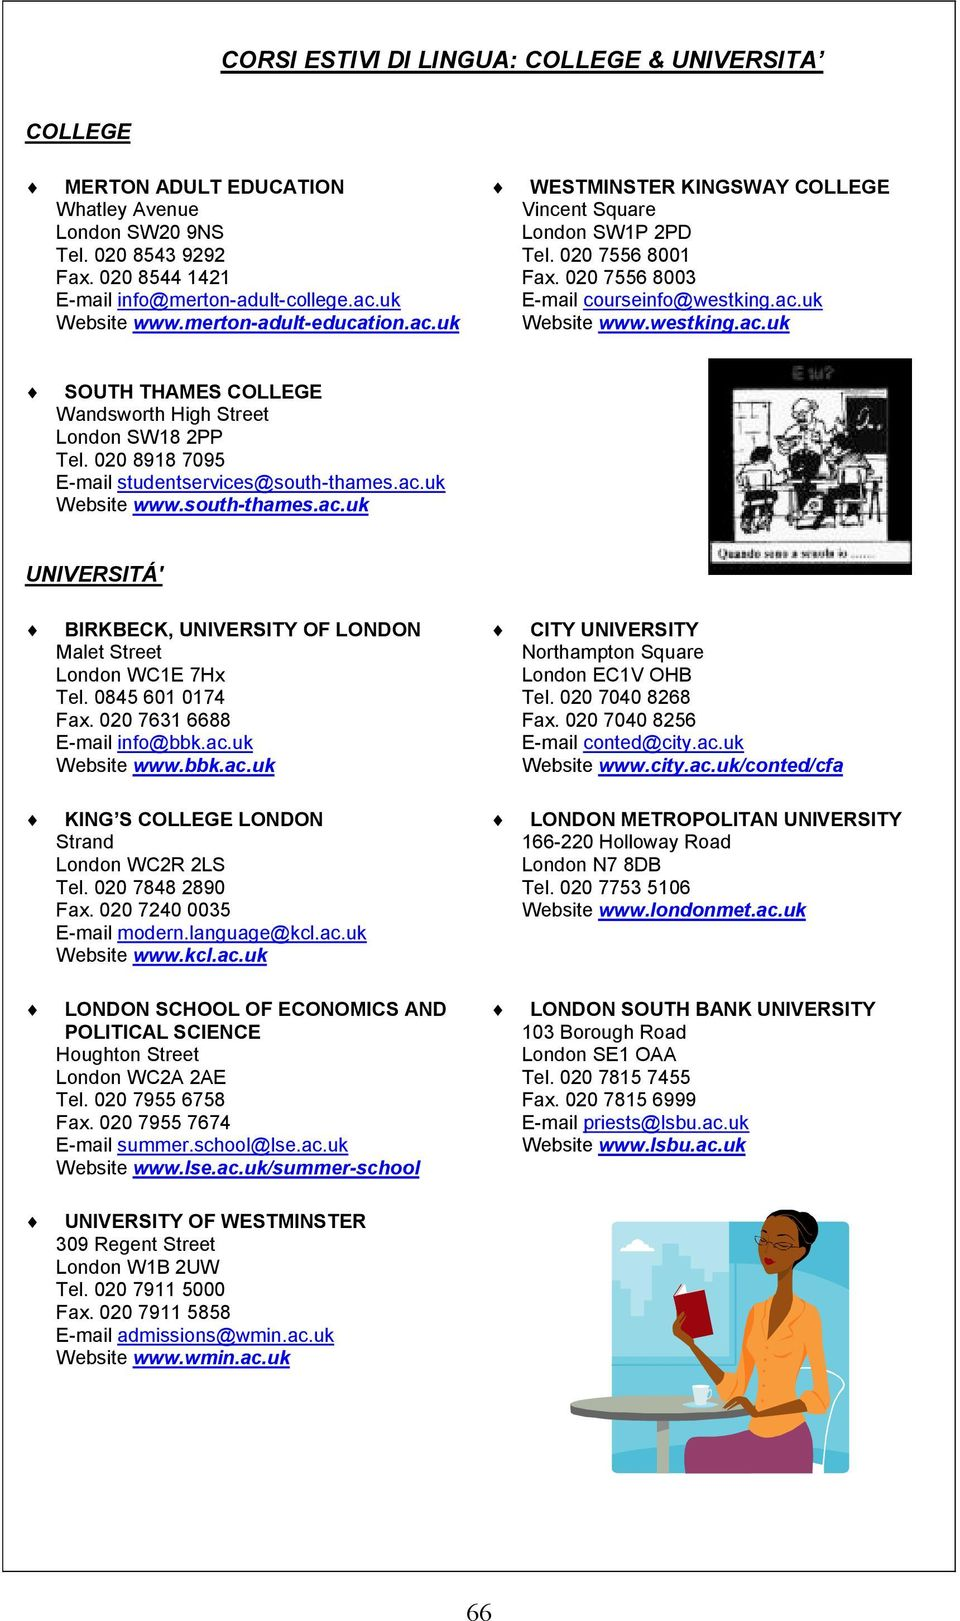 020 8918 7095 E-mail studentservices@south-thames.ac.uk Website www.south-thames.ac.uk UNIVERSITÁ' BIRKBECK, UNIVERSITY OF LONDON Malet Street London WC1E 7Hx Tel. 0845 601 0174 Fax.